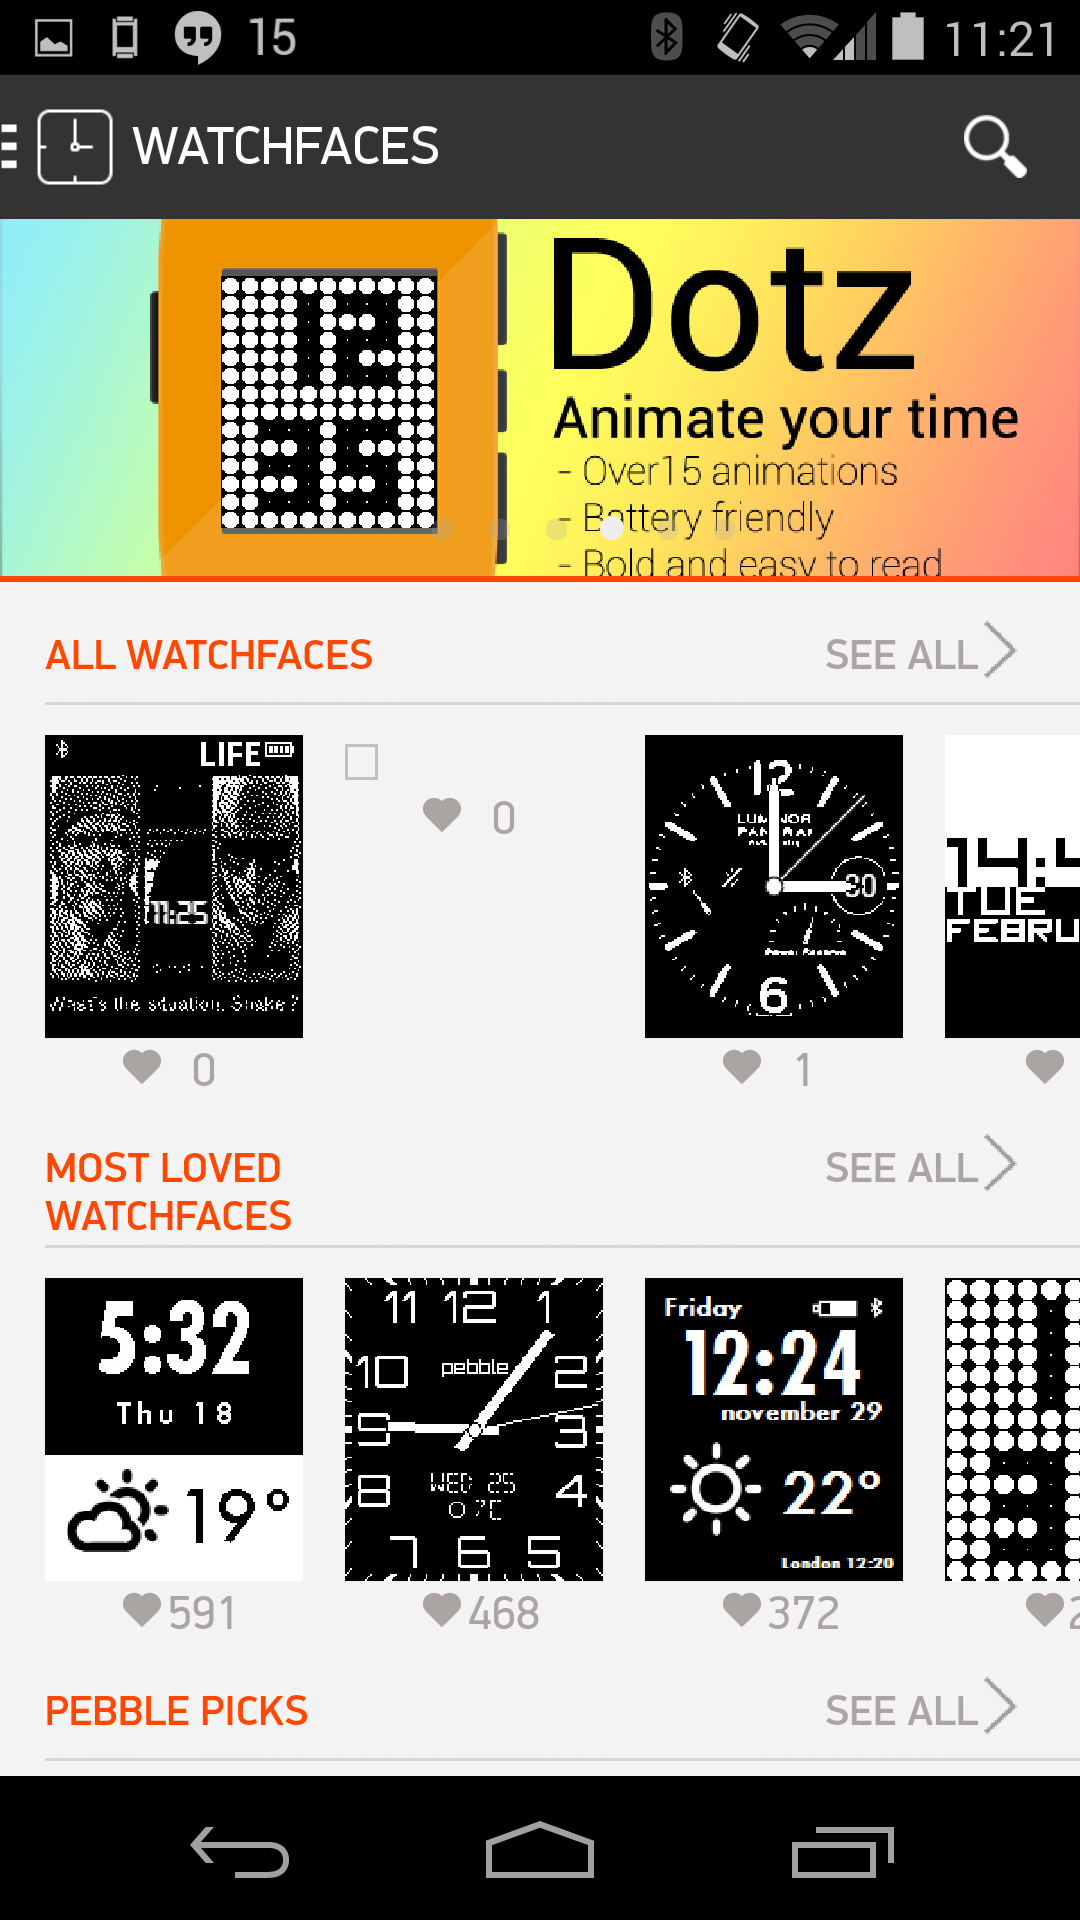 Watchfaces